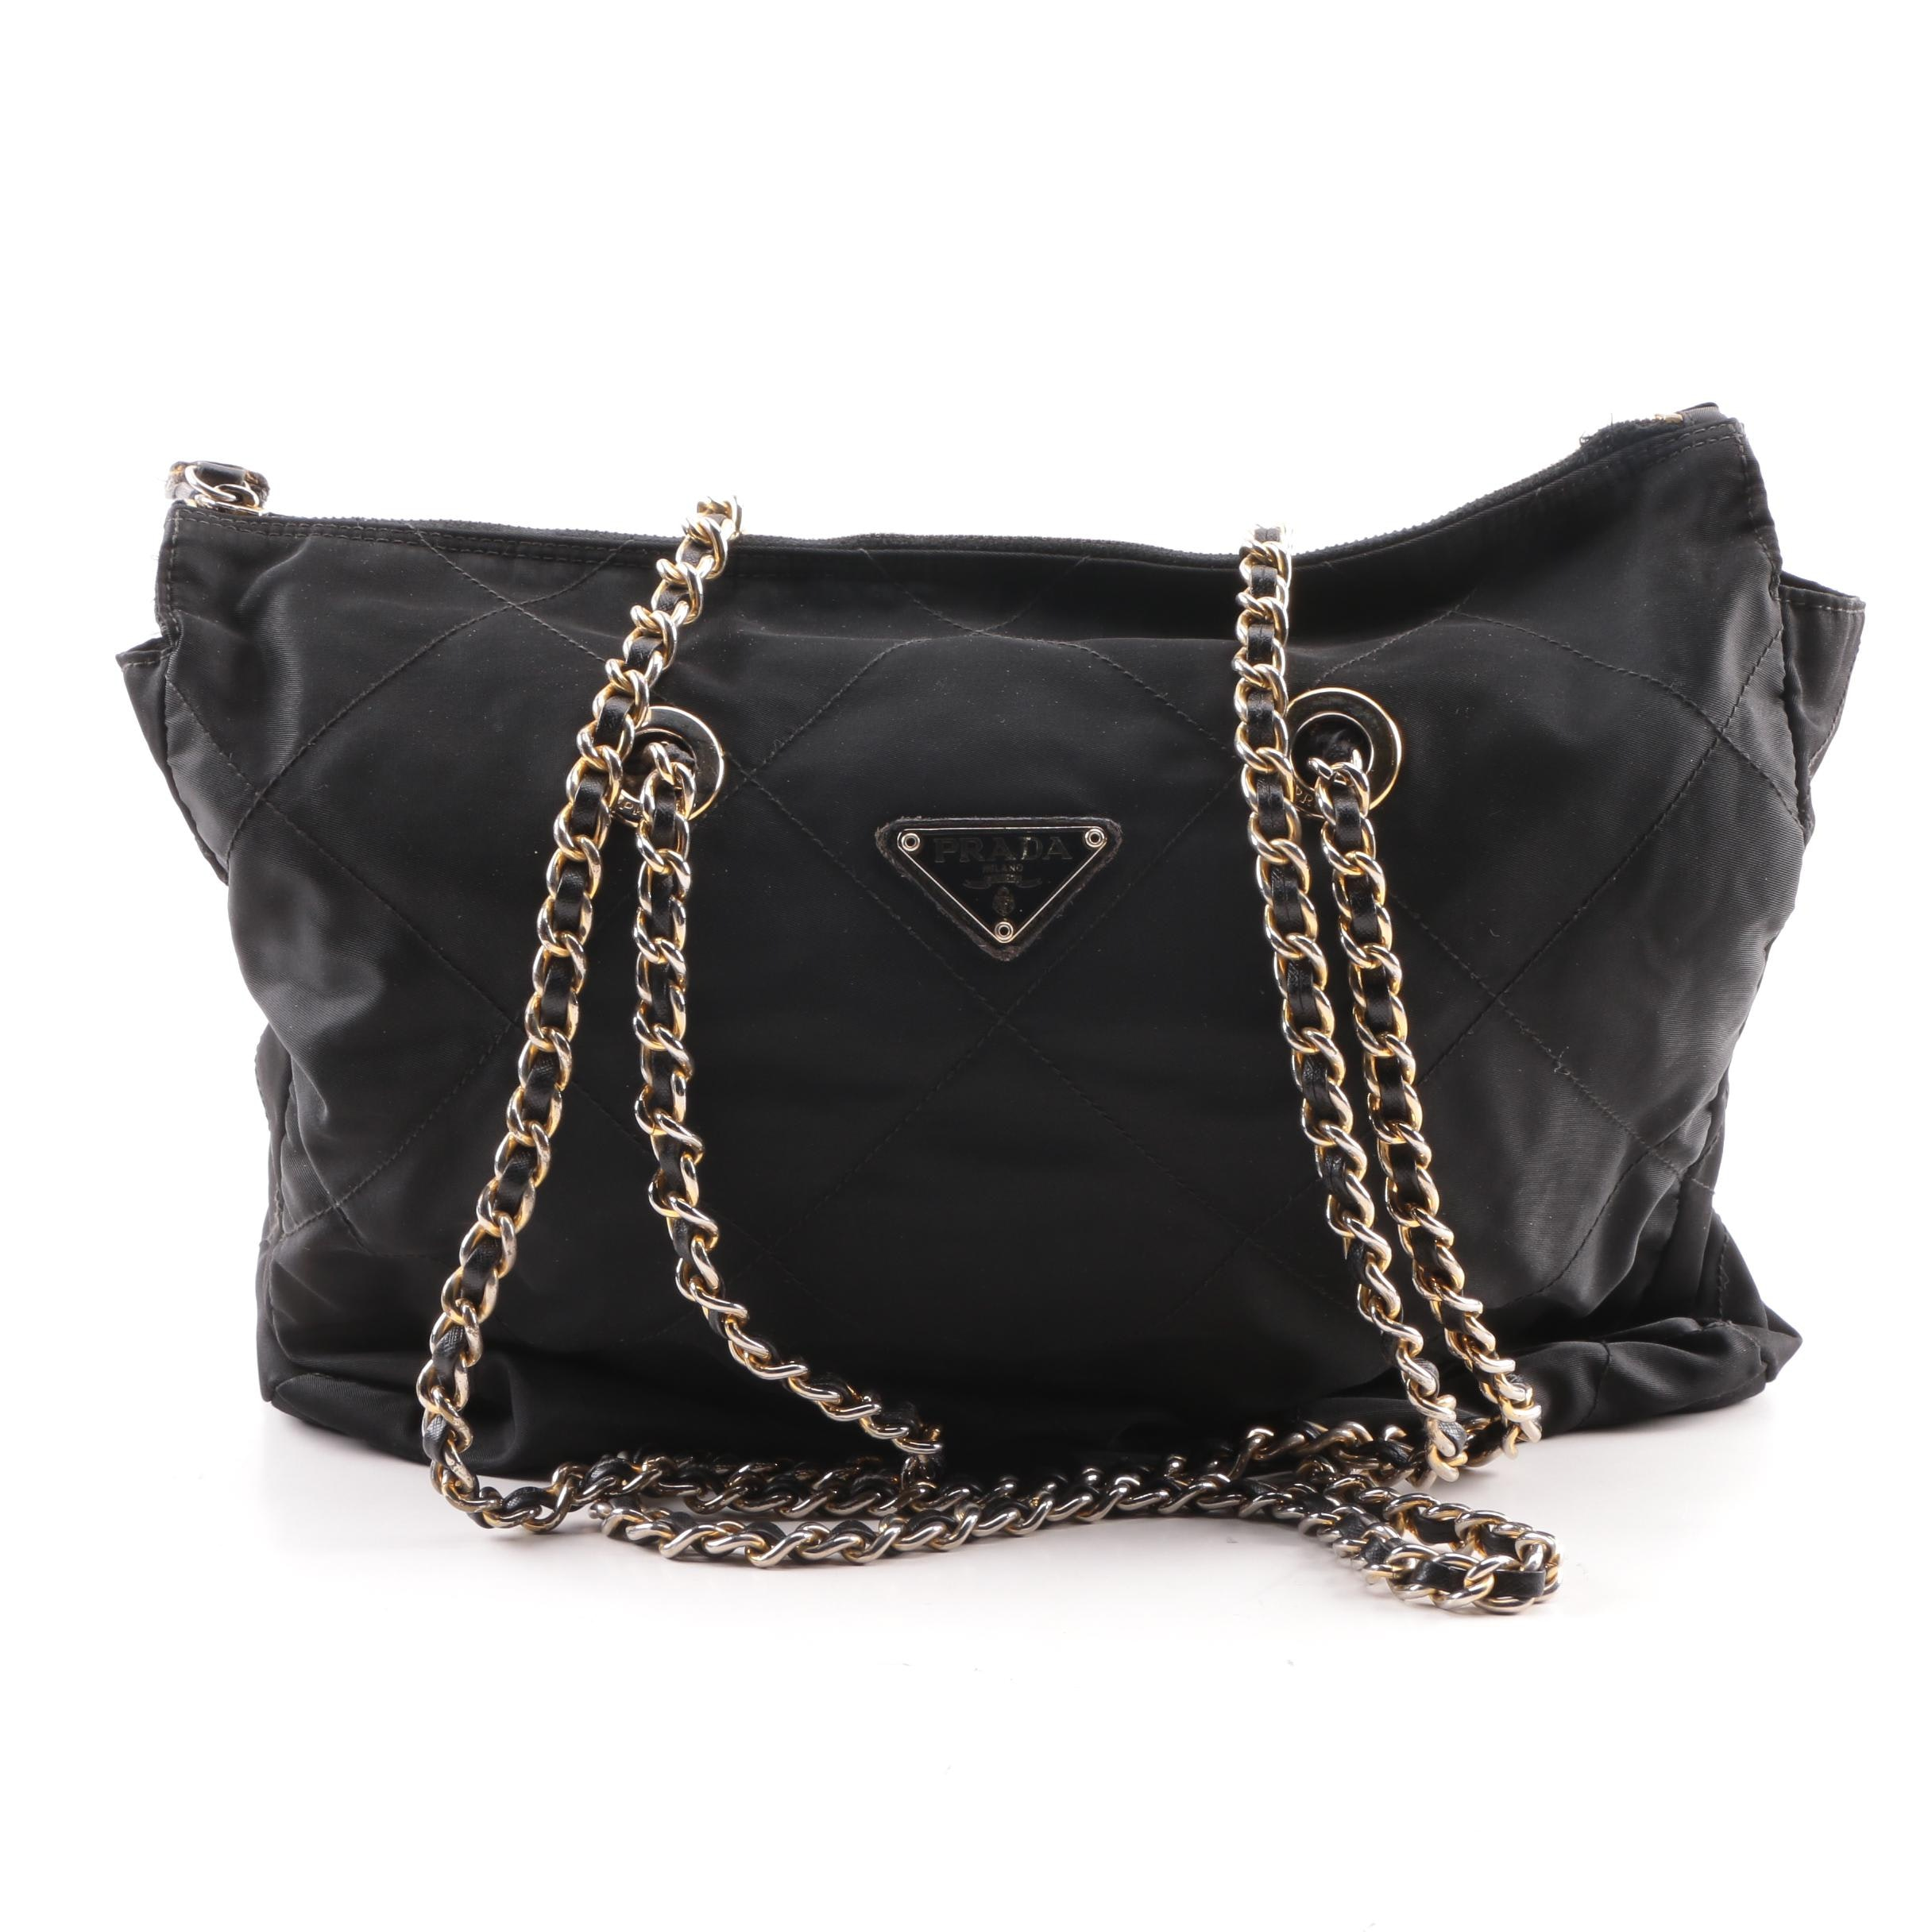 Prada Quilted Black Nylon Shoulder Bag